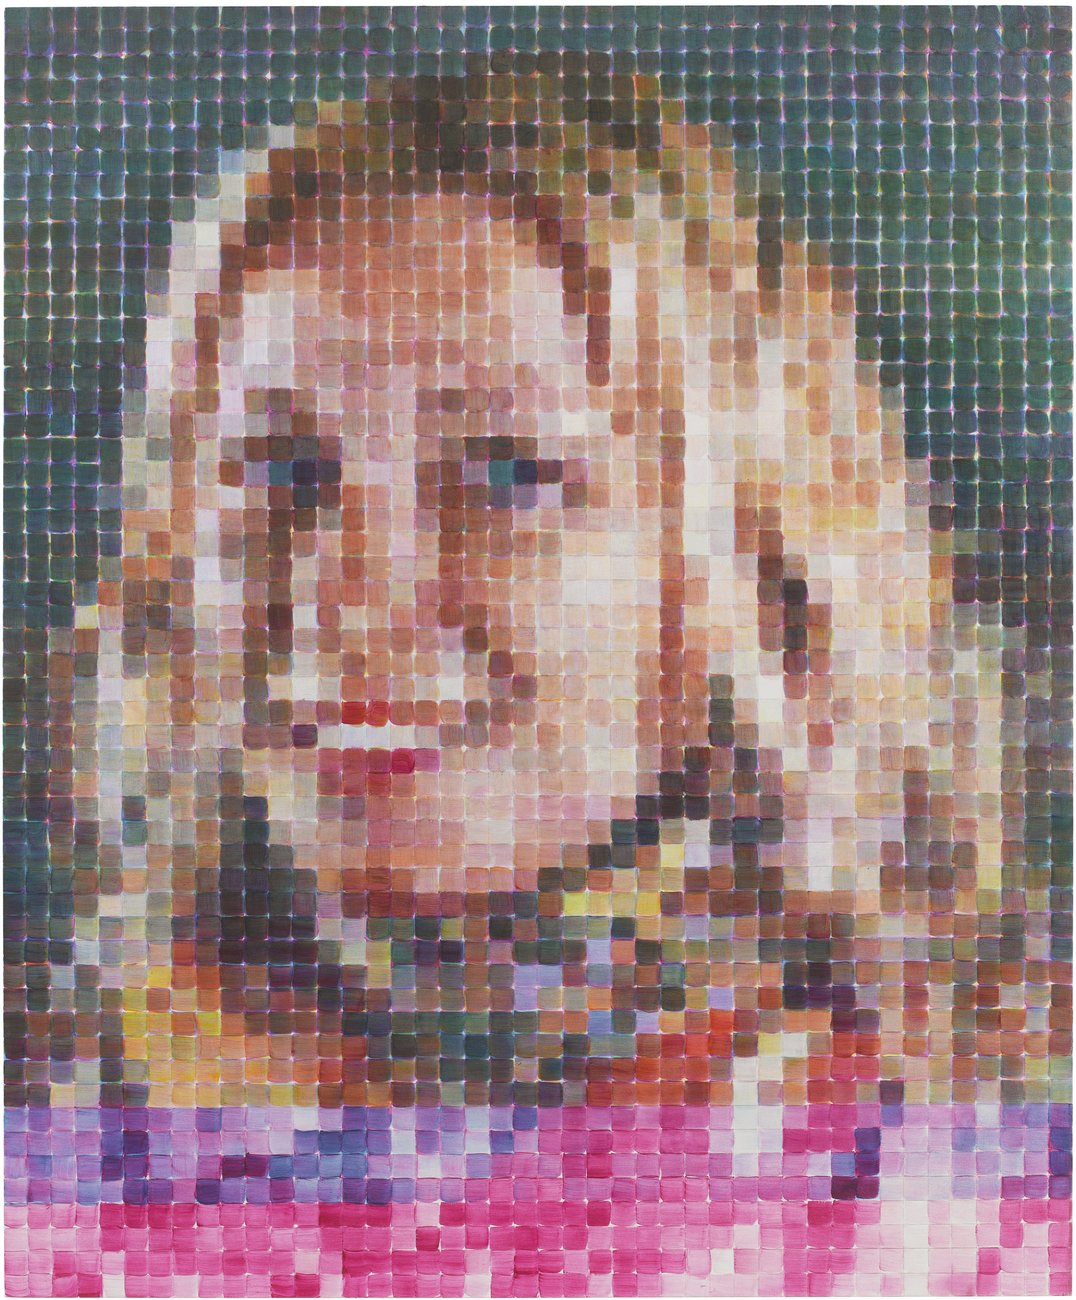 Portrait of a blonde woman composed of a grid of individually painted square cells with pink undertones